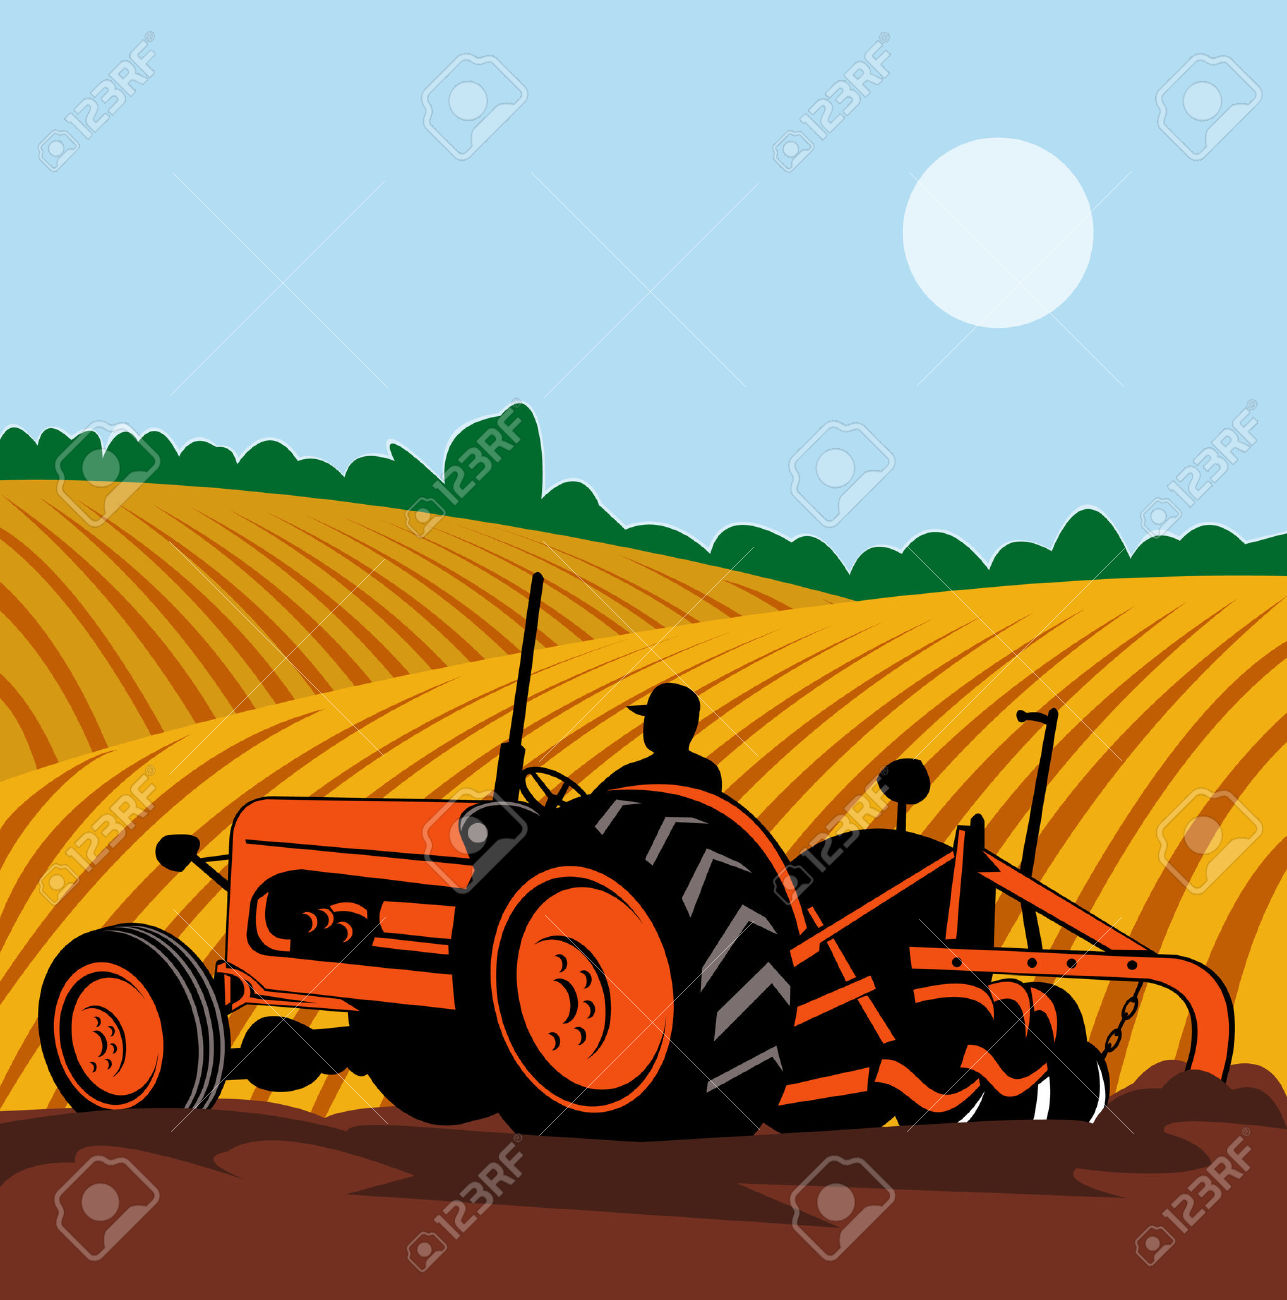 Feilds clipart agriculture field #4